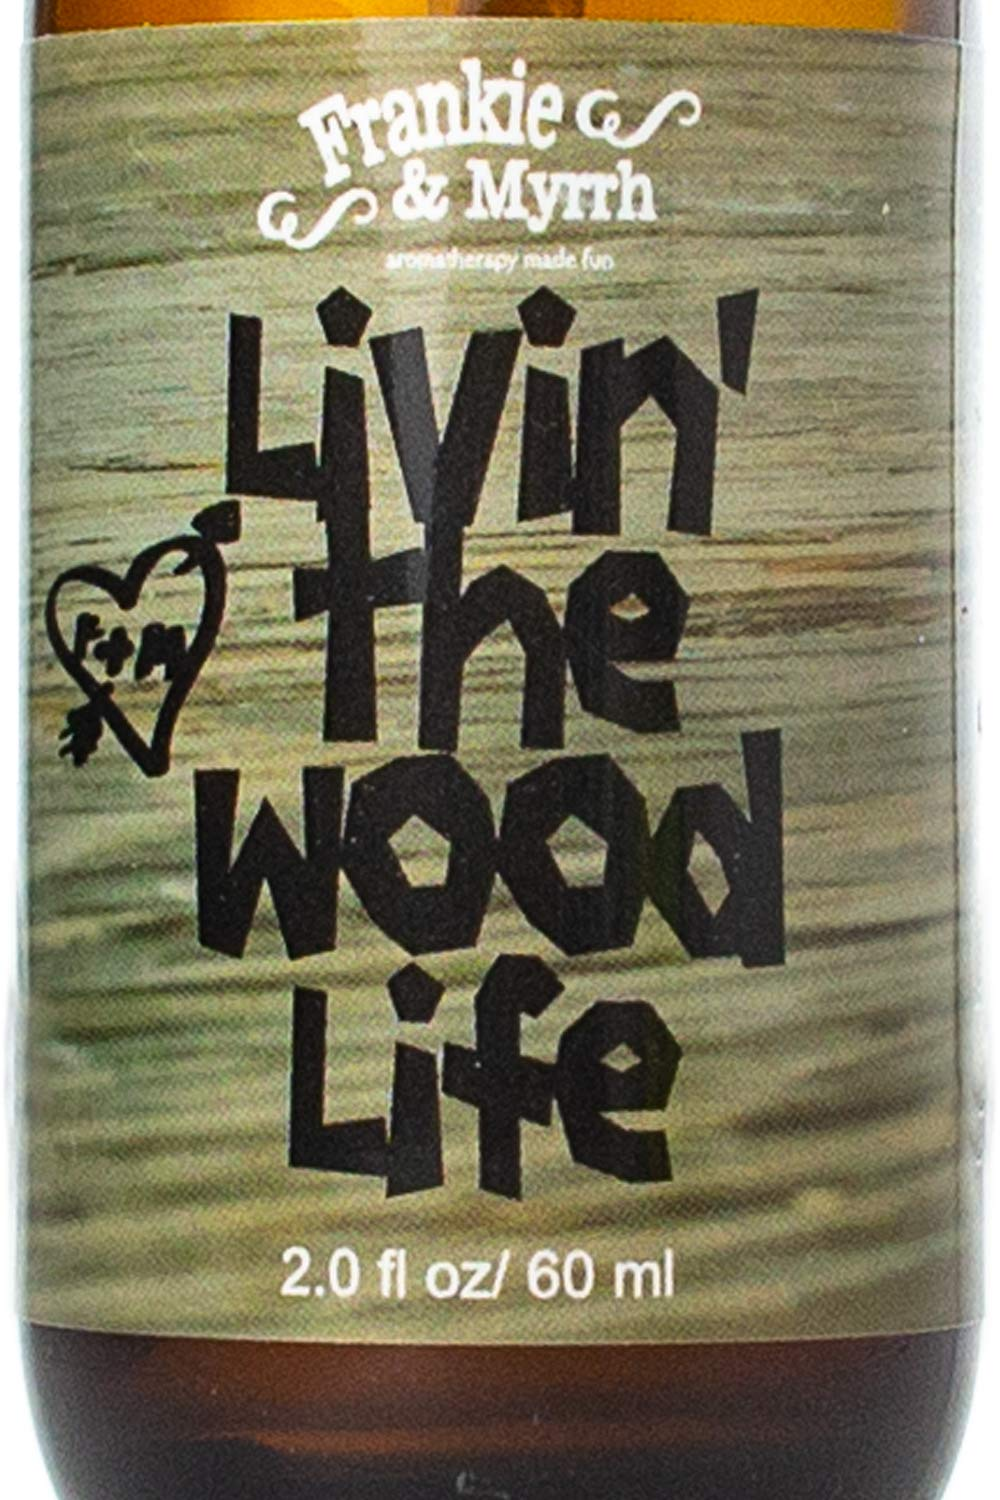 Livin' The Wood Life | Patchouli, Cedar, Vanilla Natural Perfume/Cologne | Essential Oil Spray by Frankie & Myrrh